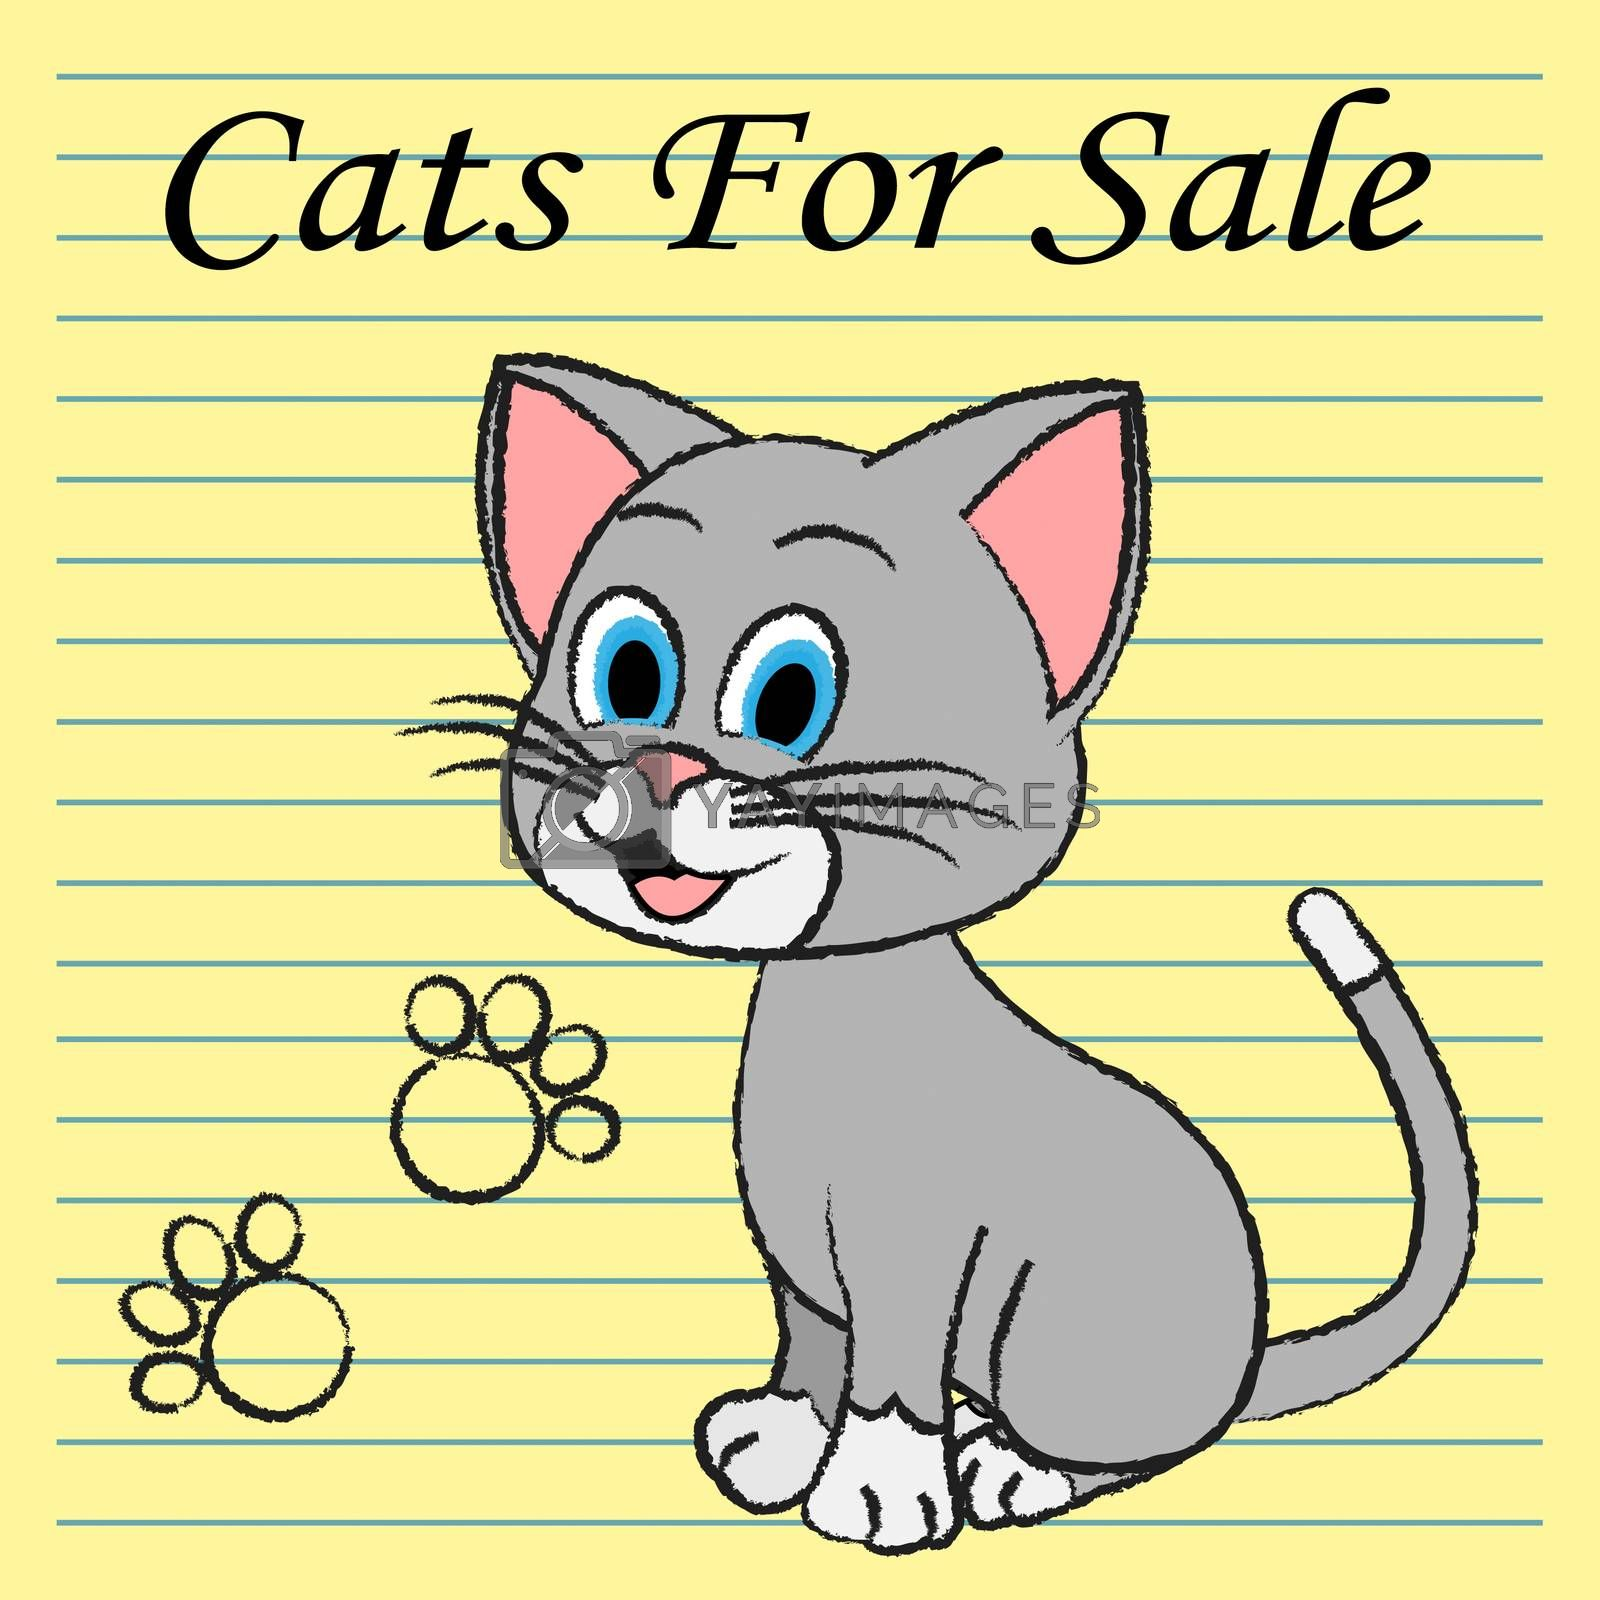 Cats For Sale Showing Pet Pedigree And Kitty